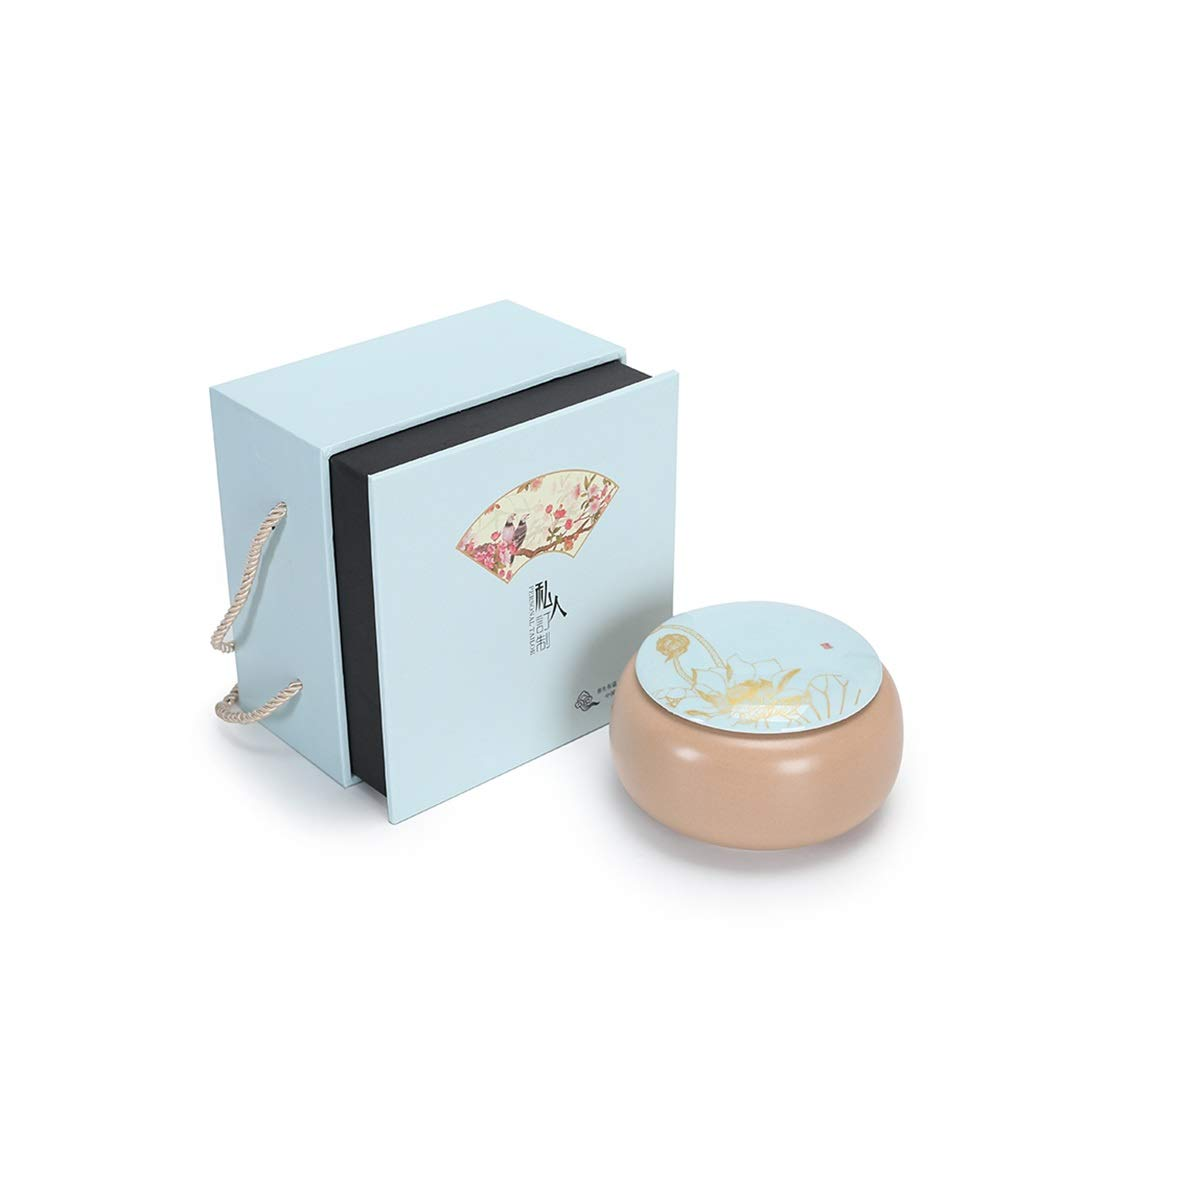 bluee E bluee E Tongboshi Angel Star, Pet Urn, Cremation Urns for Pets, Functional Urn, Ceramic Sealed, Moisture Proof, Keepsake Box for Dogs and Cats, Wooden Gift Box Hardcover (color   bluee, Style   E)